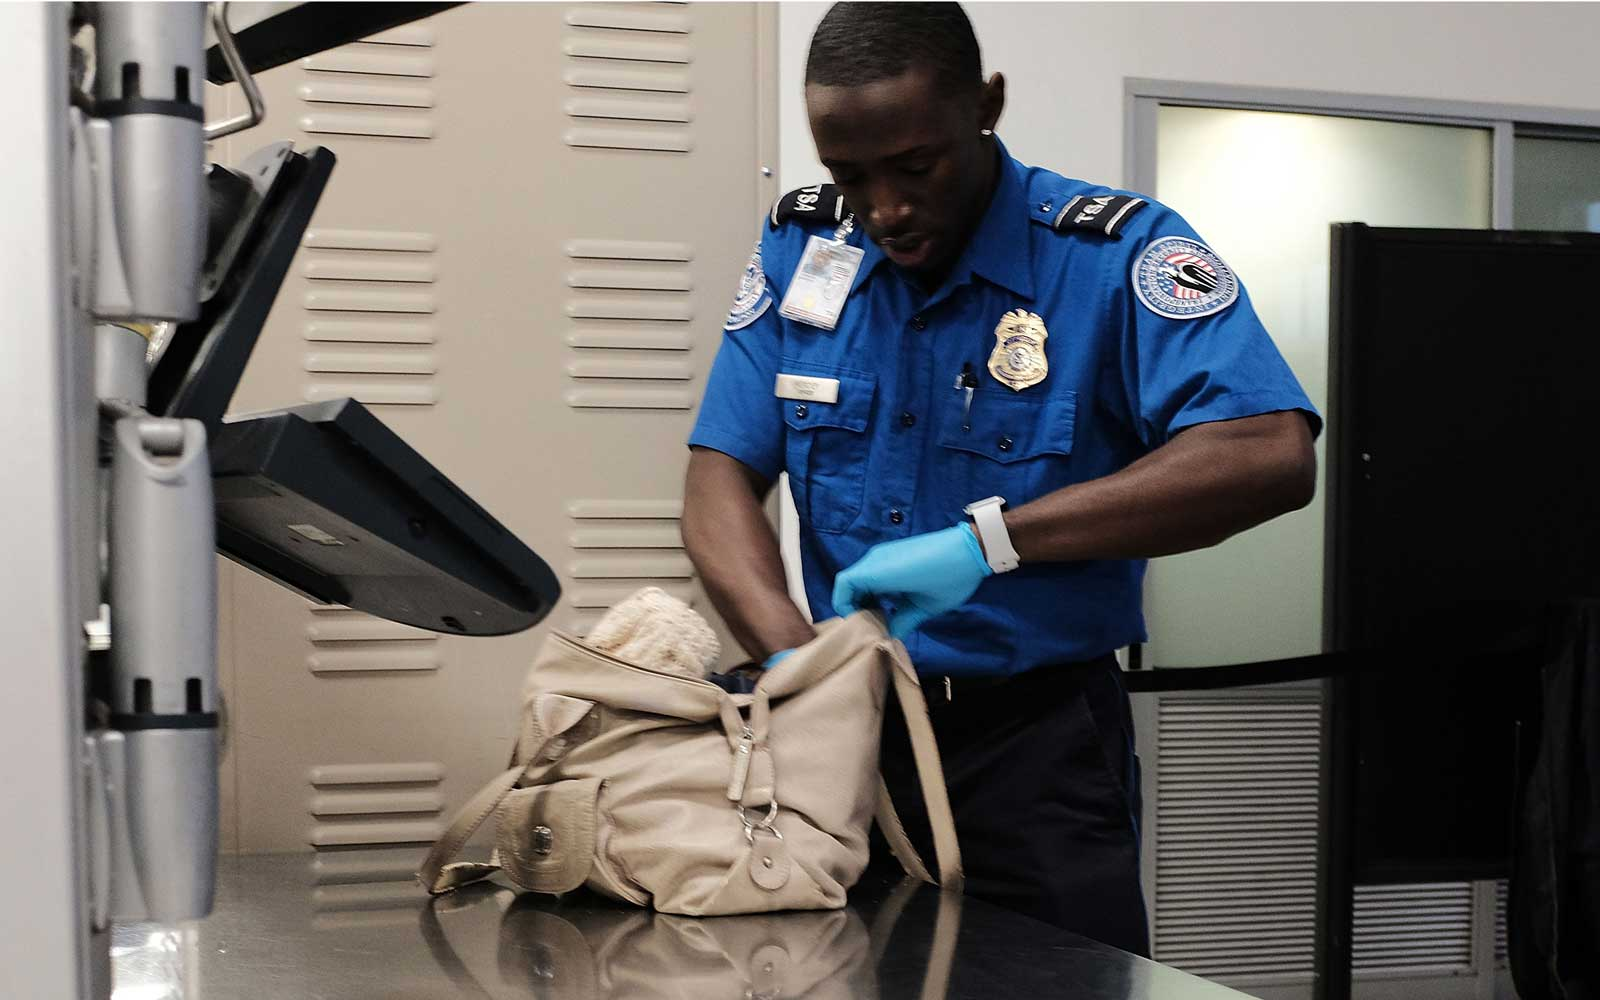 A Transportation Security Administration (TSA) worker screens passengers at LaGuardia Airport (LGA)